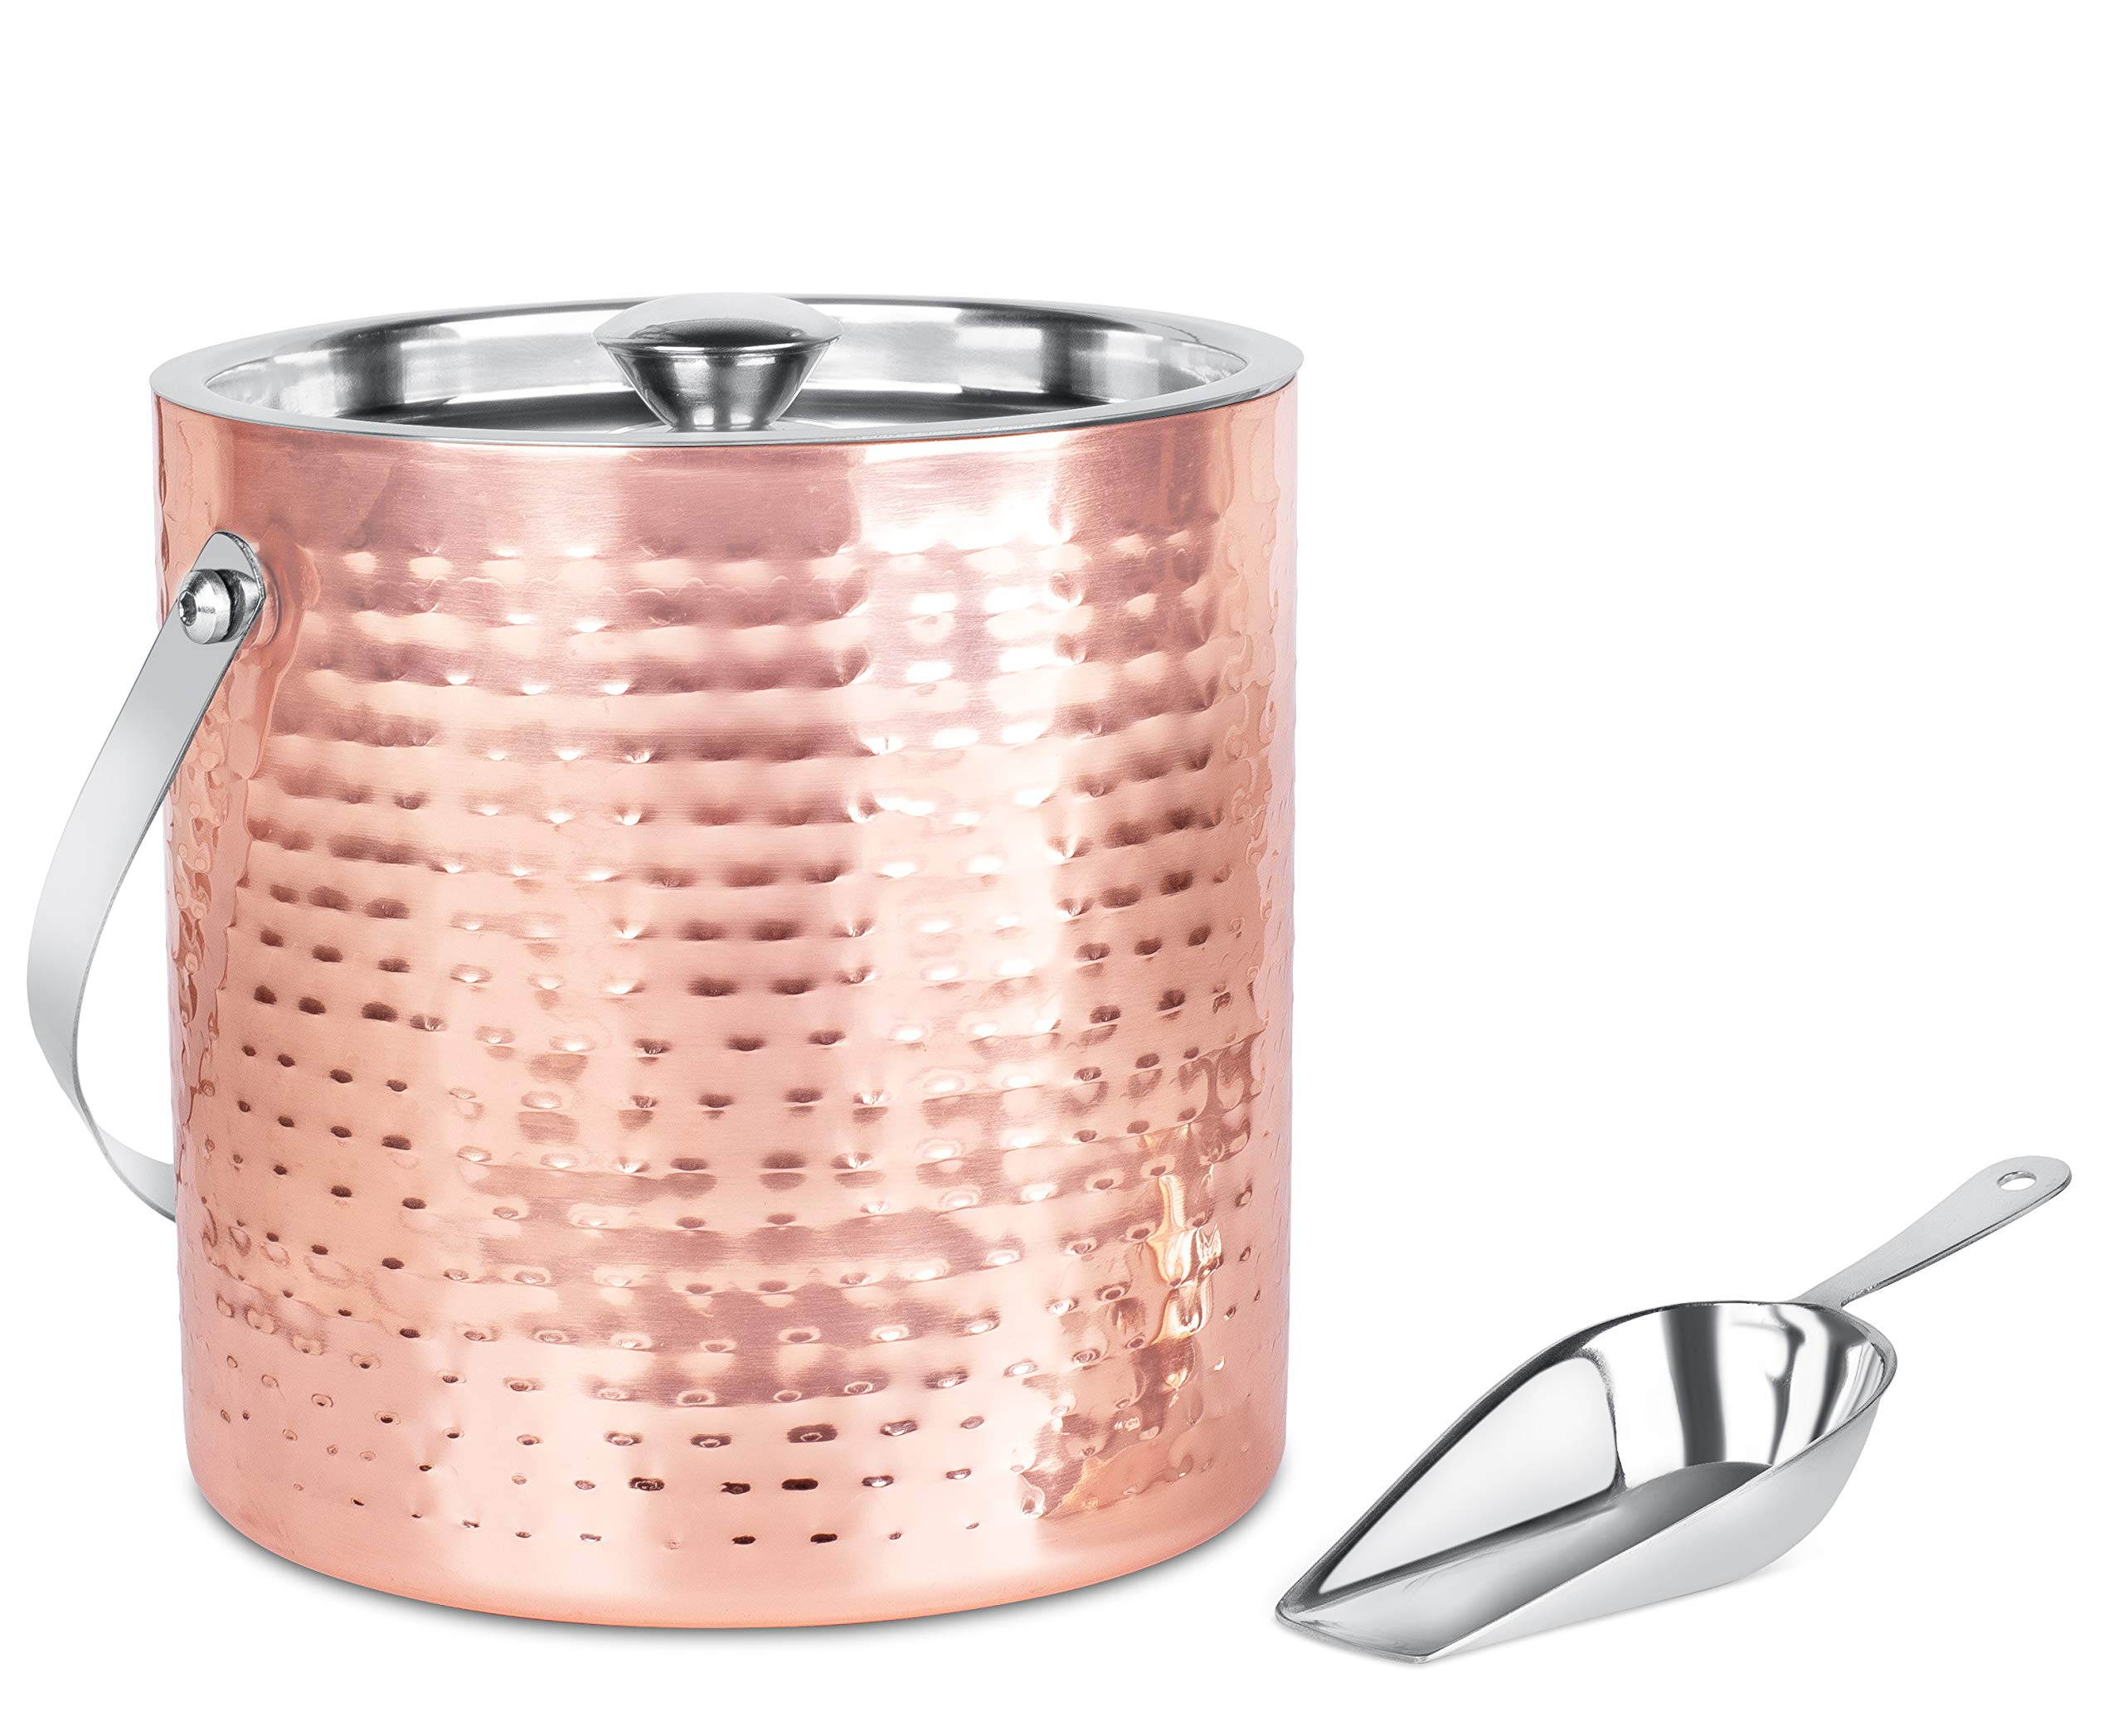 BirdRock Home Ice Bucket with Scoop & Lid | 2.8 Liter Hammered 18/8 Stainless Steel Container for Bar | Double Wall Insulated Bucket with Carrying Handle | Great for Parties | (Copper)